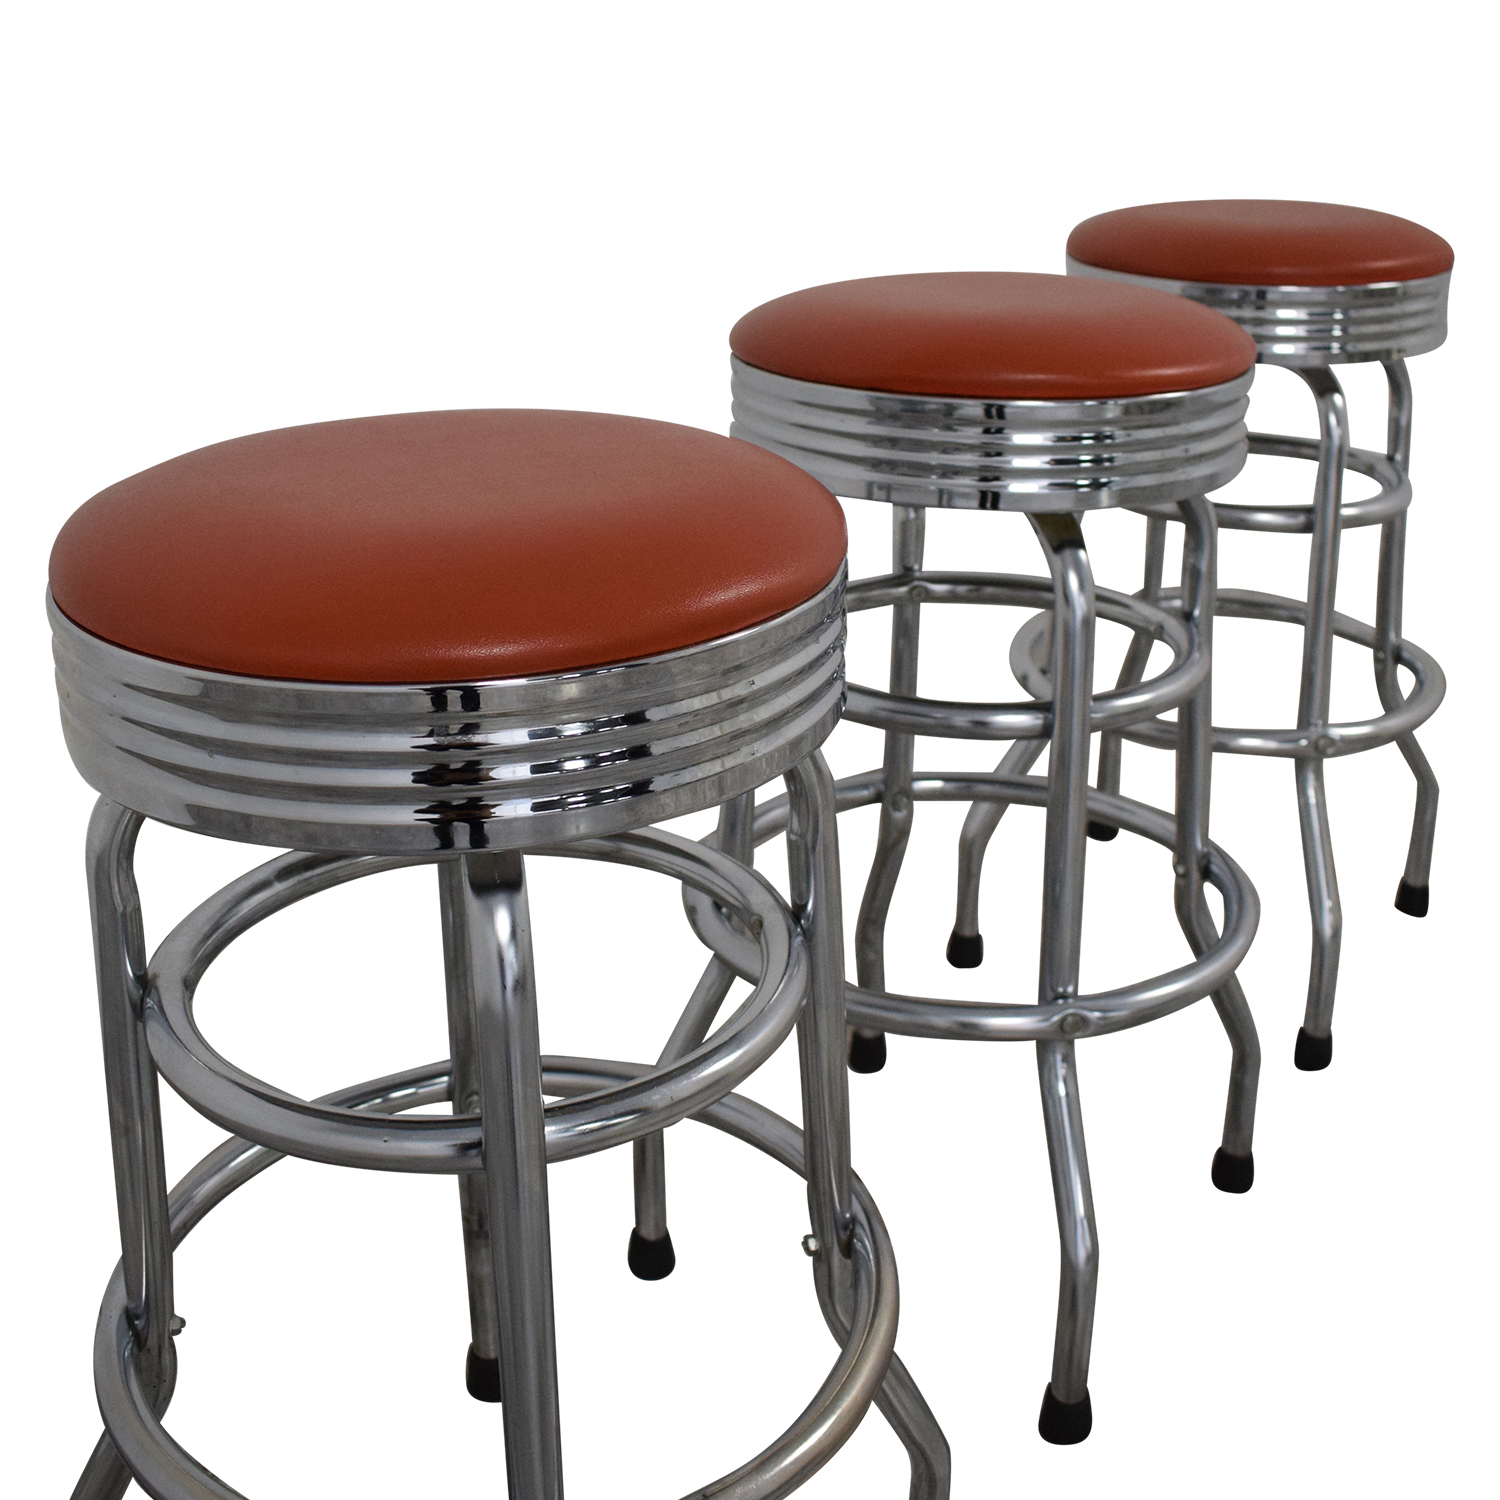 Retro Diner Bar Stools sale